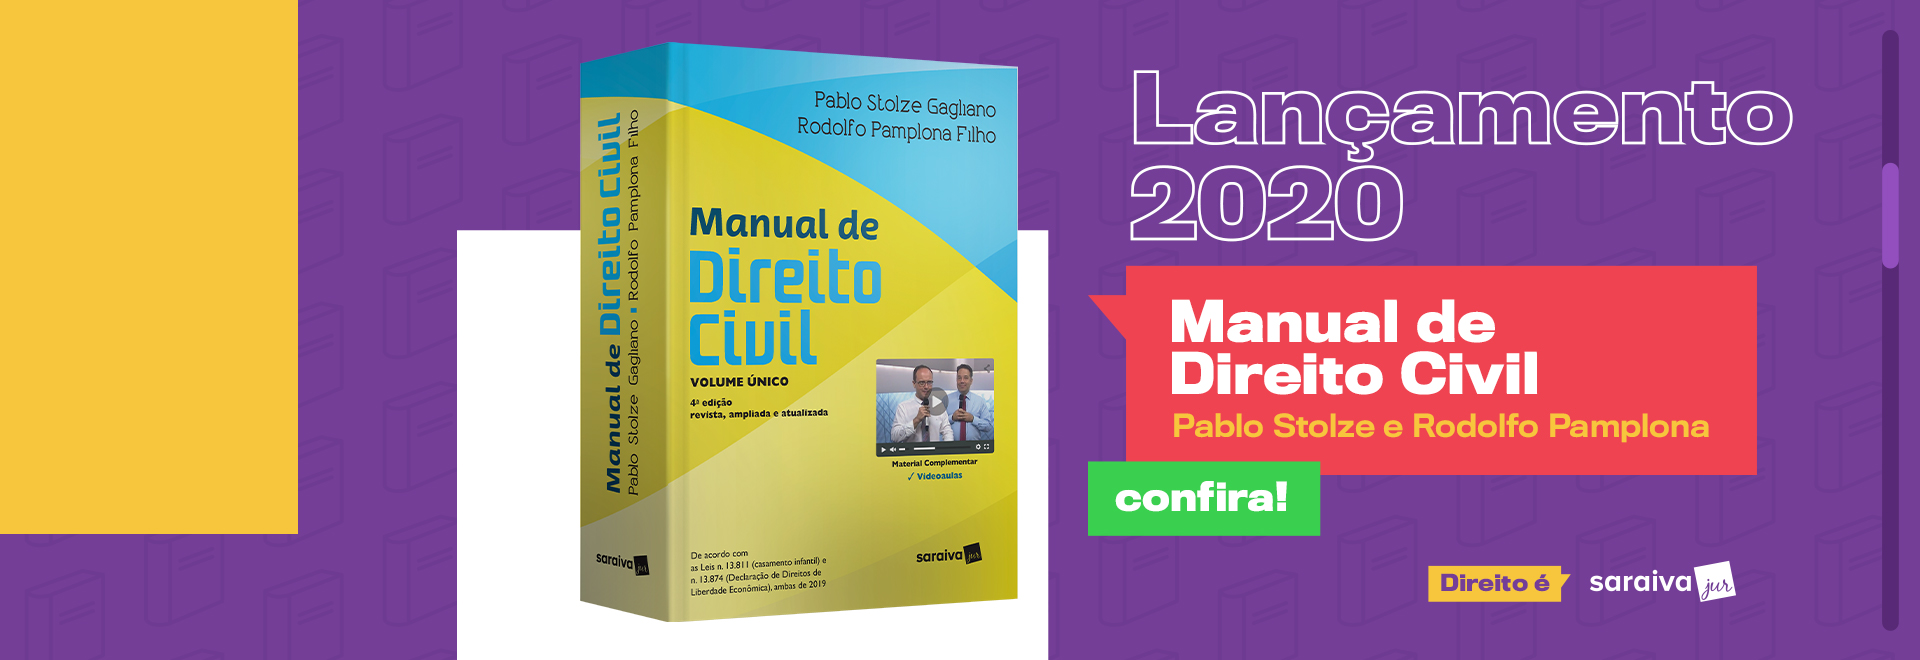 Manual Direito Civil